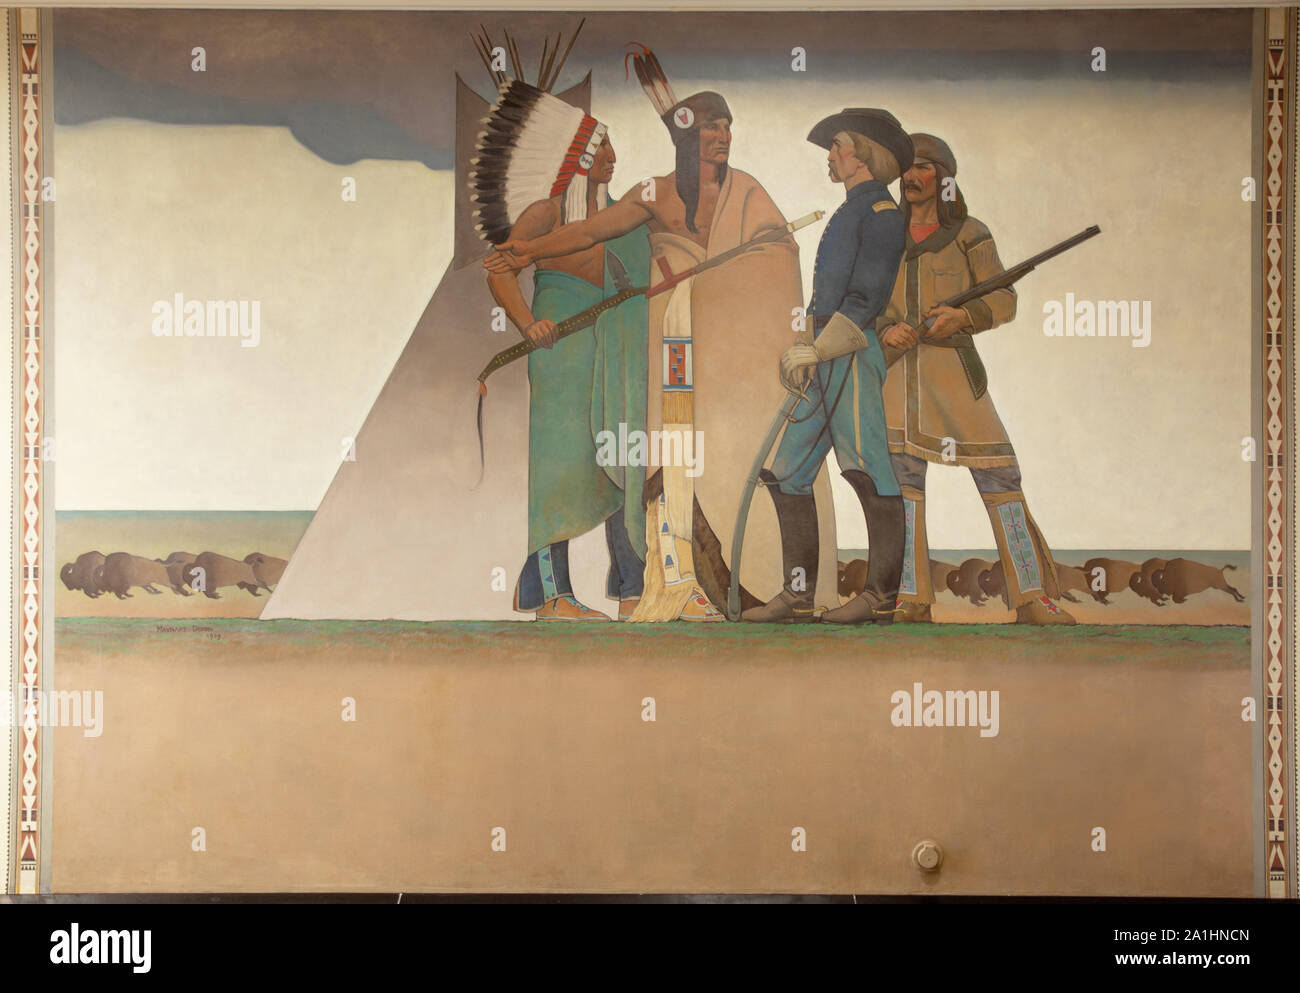 Mural Bureau of Indian Affairs: Indian & Soldier, by Maynard Dixon at the Department of Interior Building, Washington, D.C Stock Photo